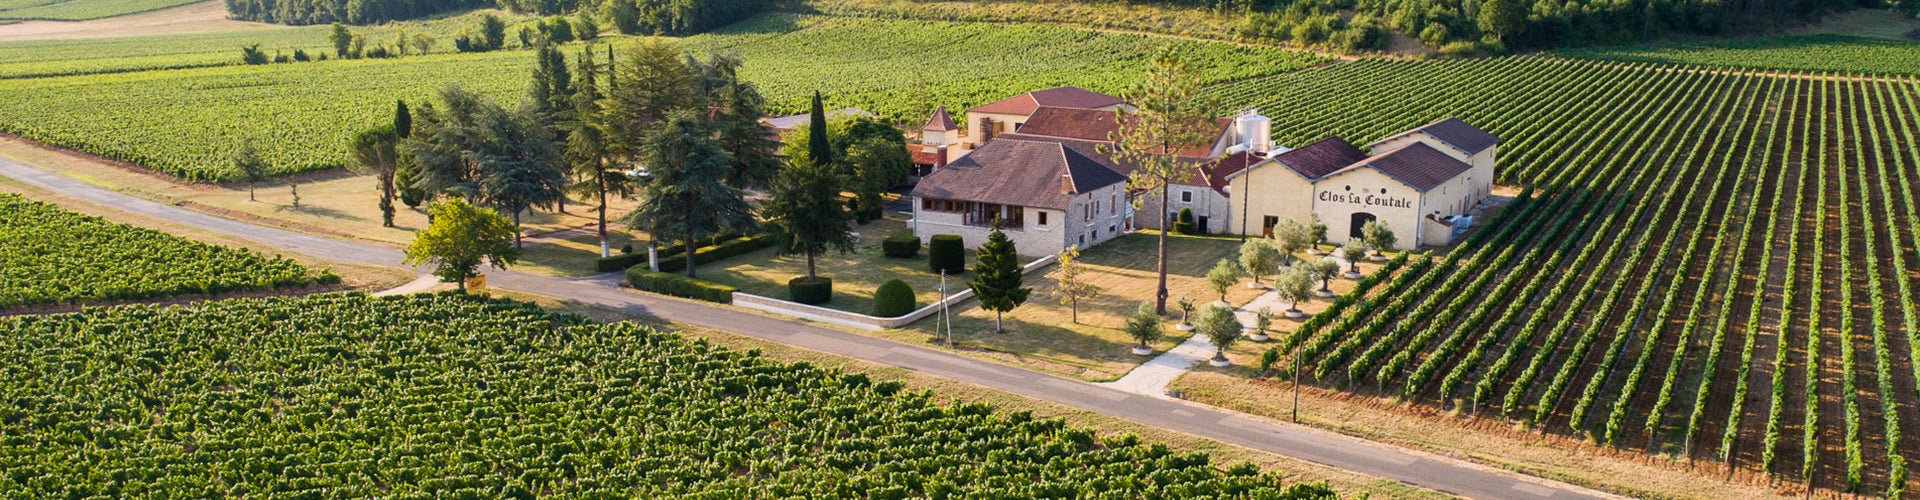 Clos La Coutale Winery and Buildings in Cahors, South West France